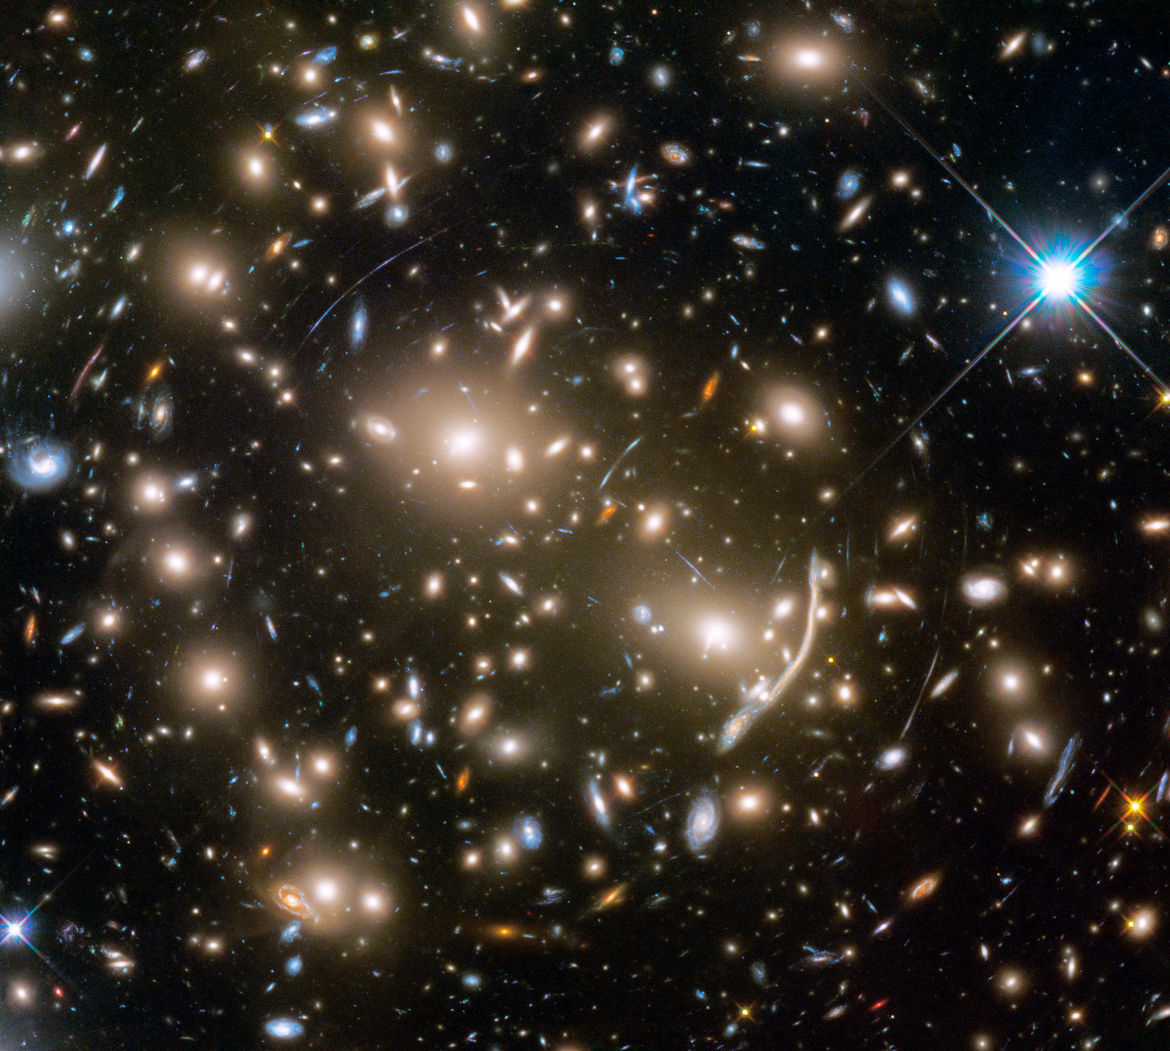 Abell 370 is a galaxy cluster about 4 billion light years from Earth. Its gravity causes light from galaxies behind it to bend, called gravitational lensing. Credit: NASA, ESA, and J. Lotz and the HFF Team (STScI)